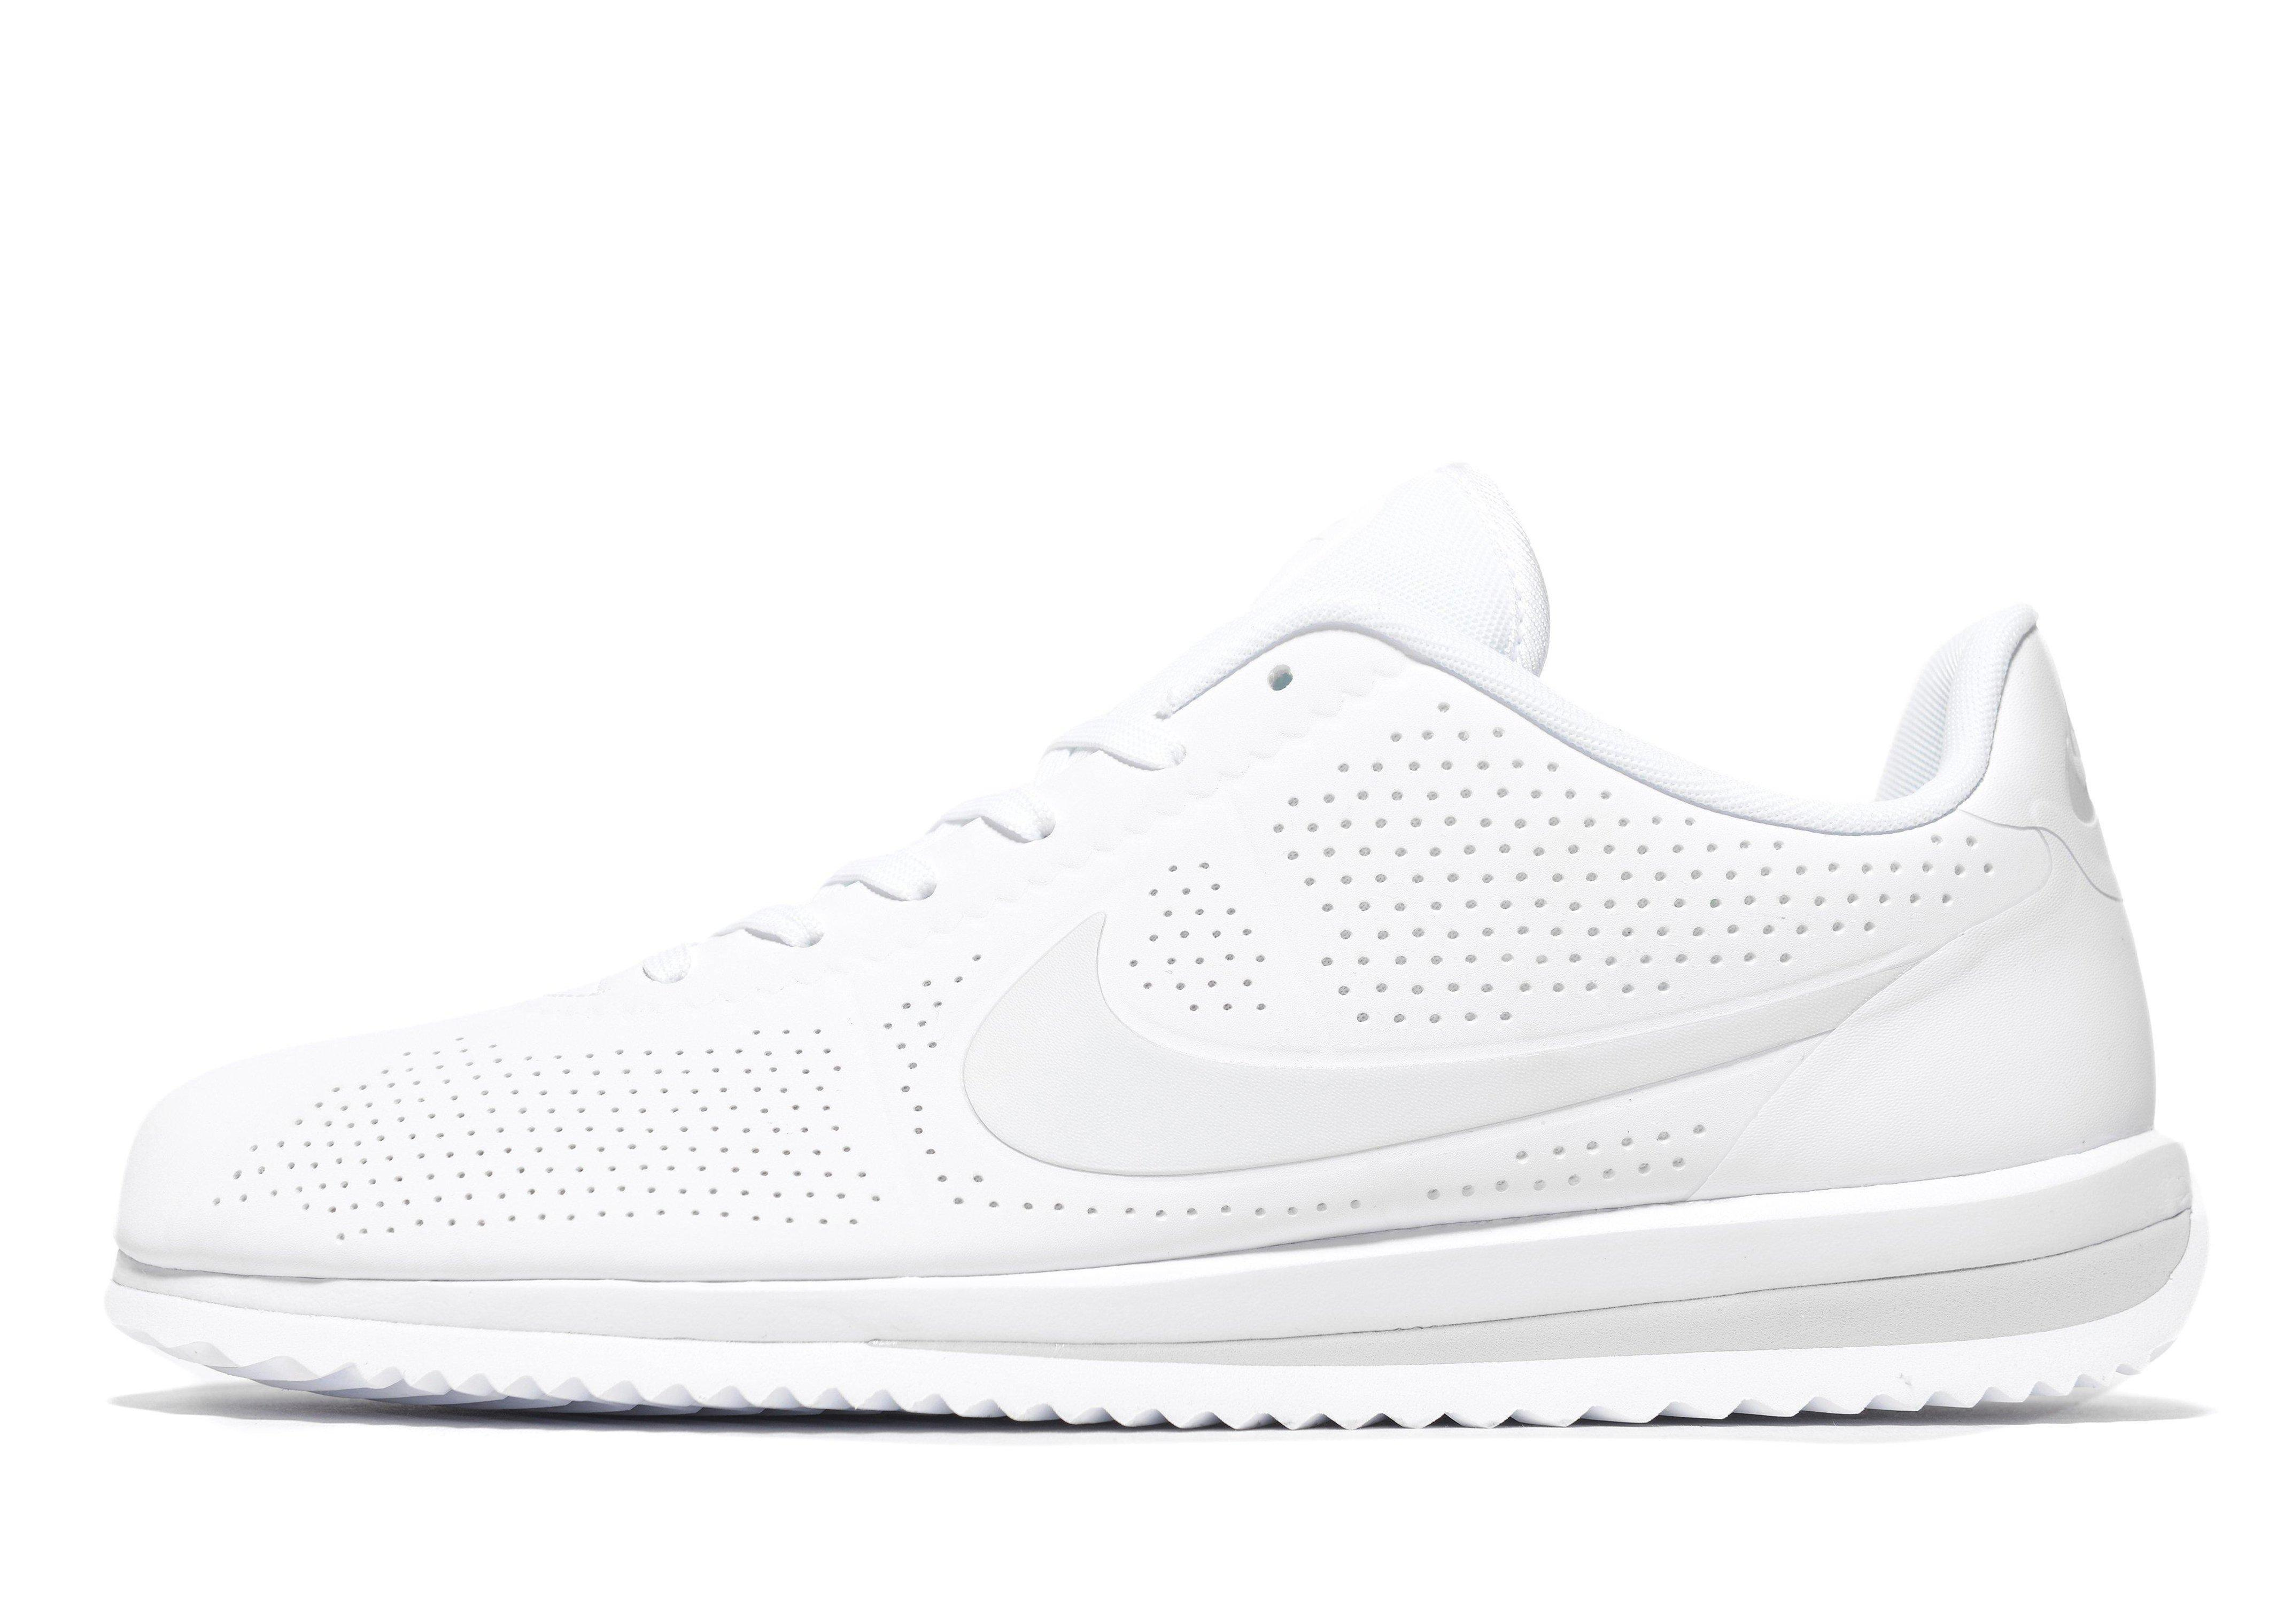 lyst nike cortez ultra moire in white for men. Black Bedroom Furniture Sets. Home Design Ideas